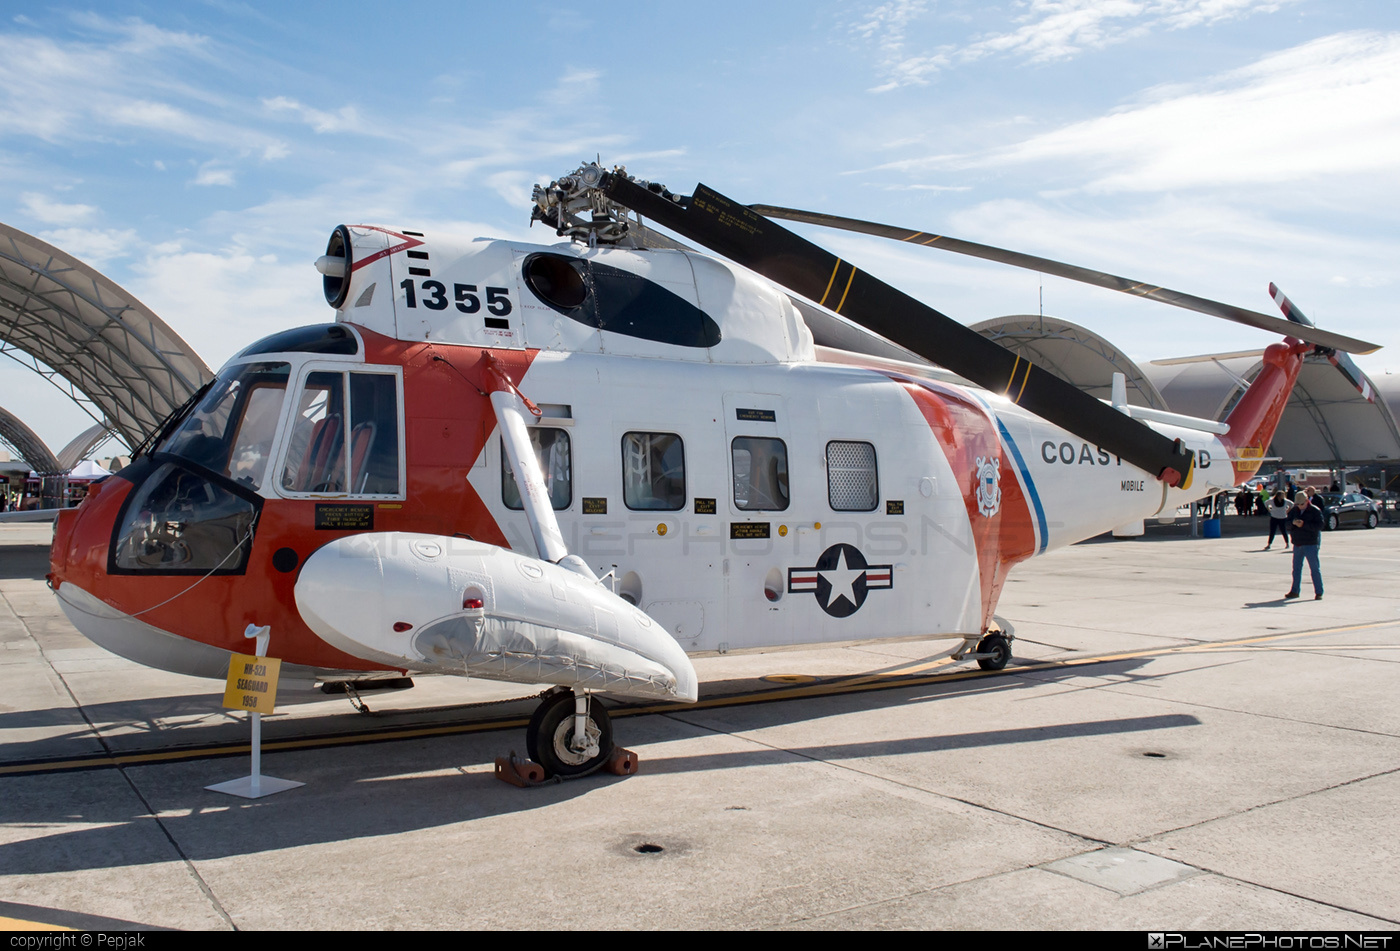 Sikorsky HH-52A Seaguard - 1355 operated by US Coast Guard (USCG) #sikorsky